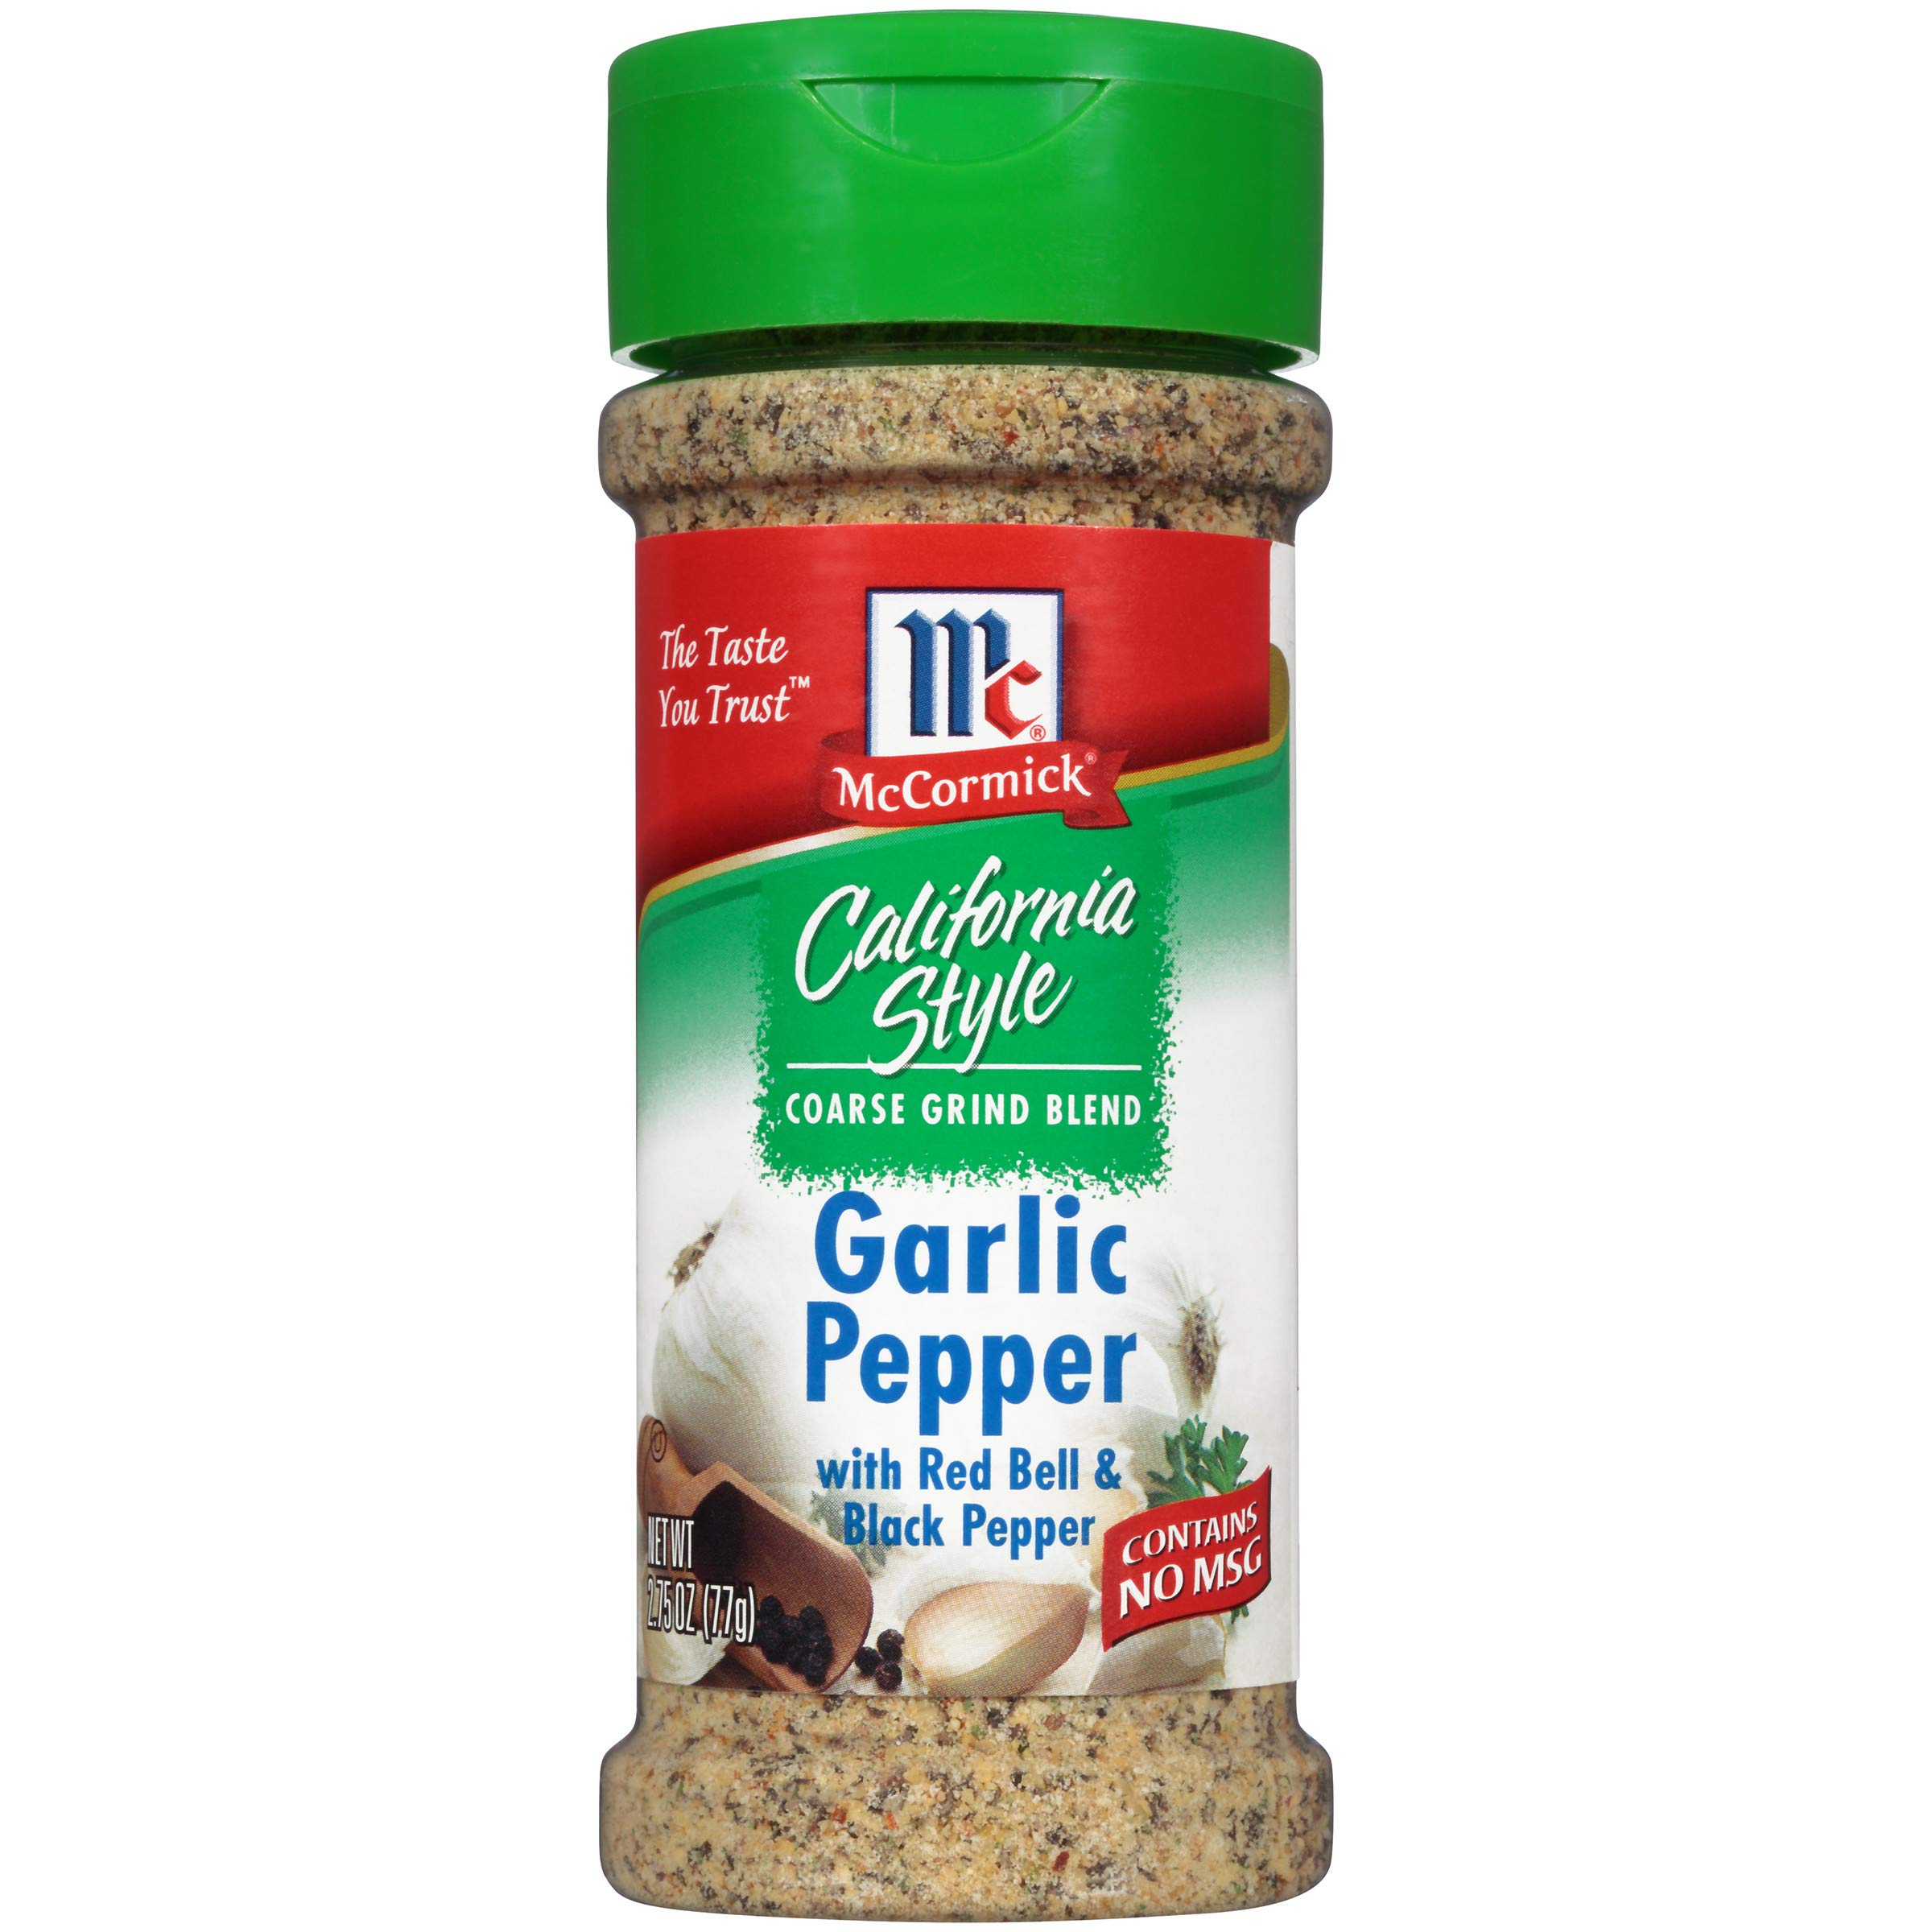 McCormick California Style Garlic Pepper with Red Bell & Black Pepper Coarse Grind Seasoning, 2.75 oz